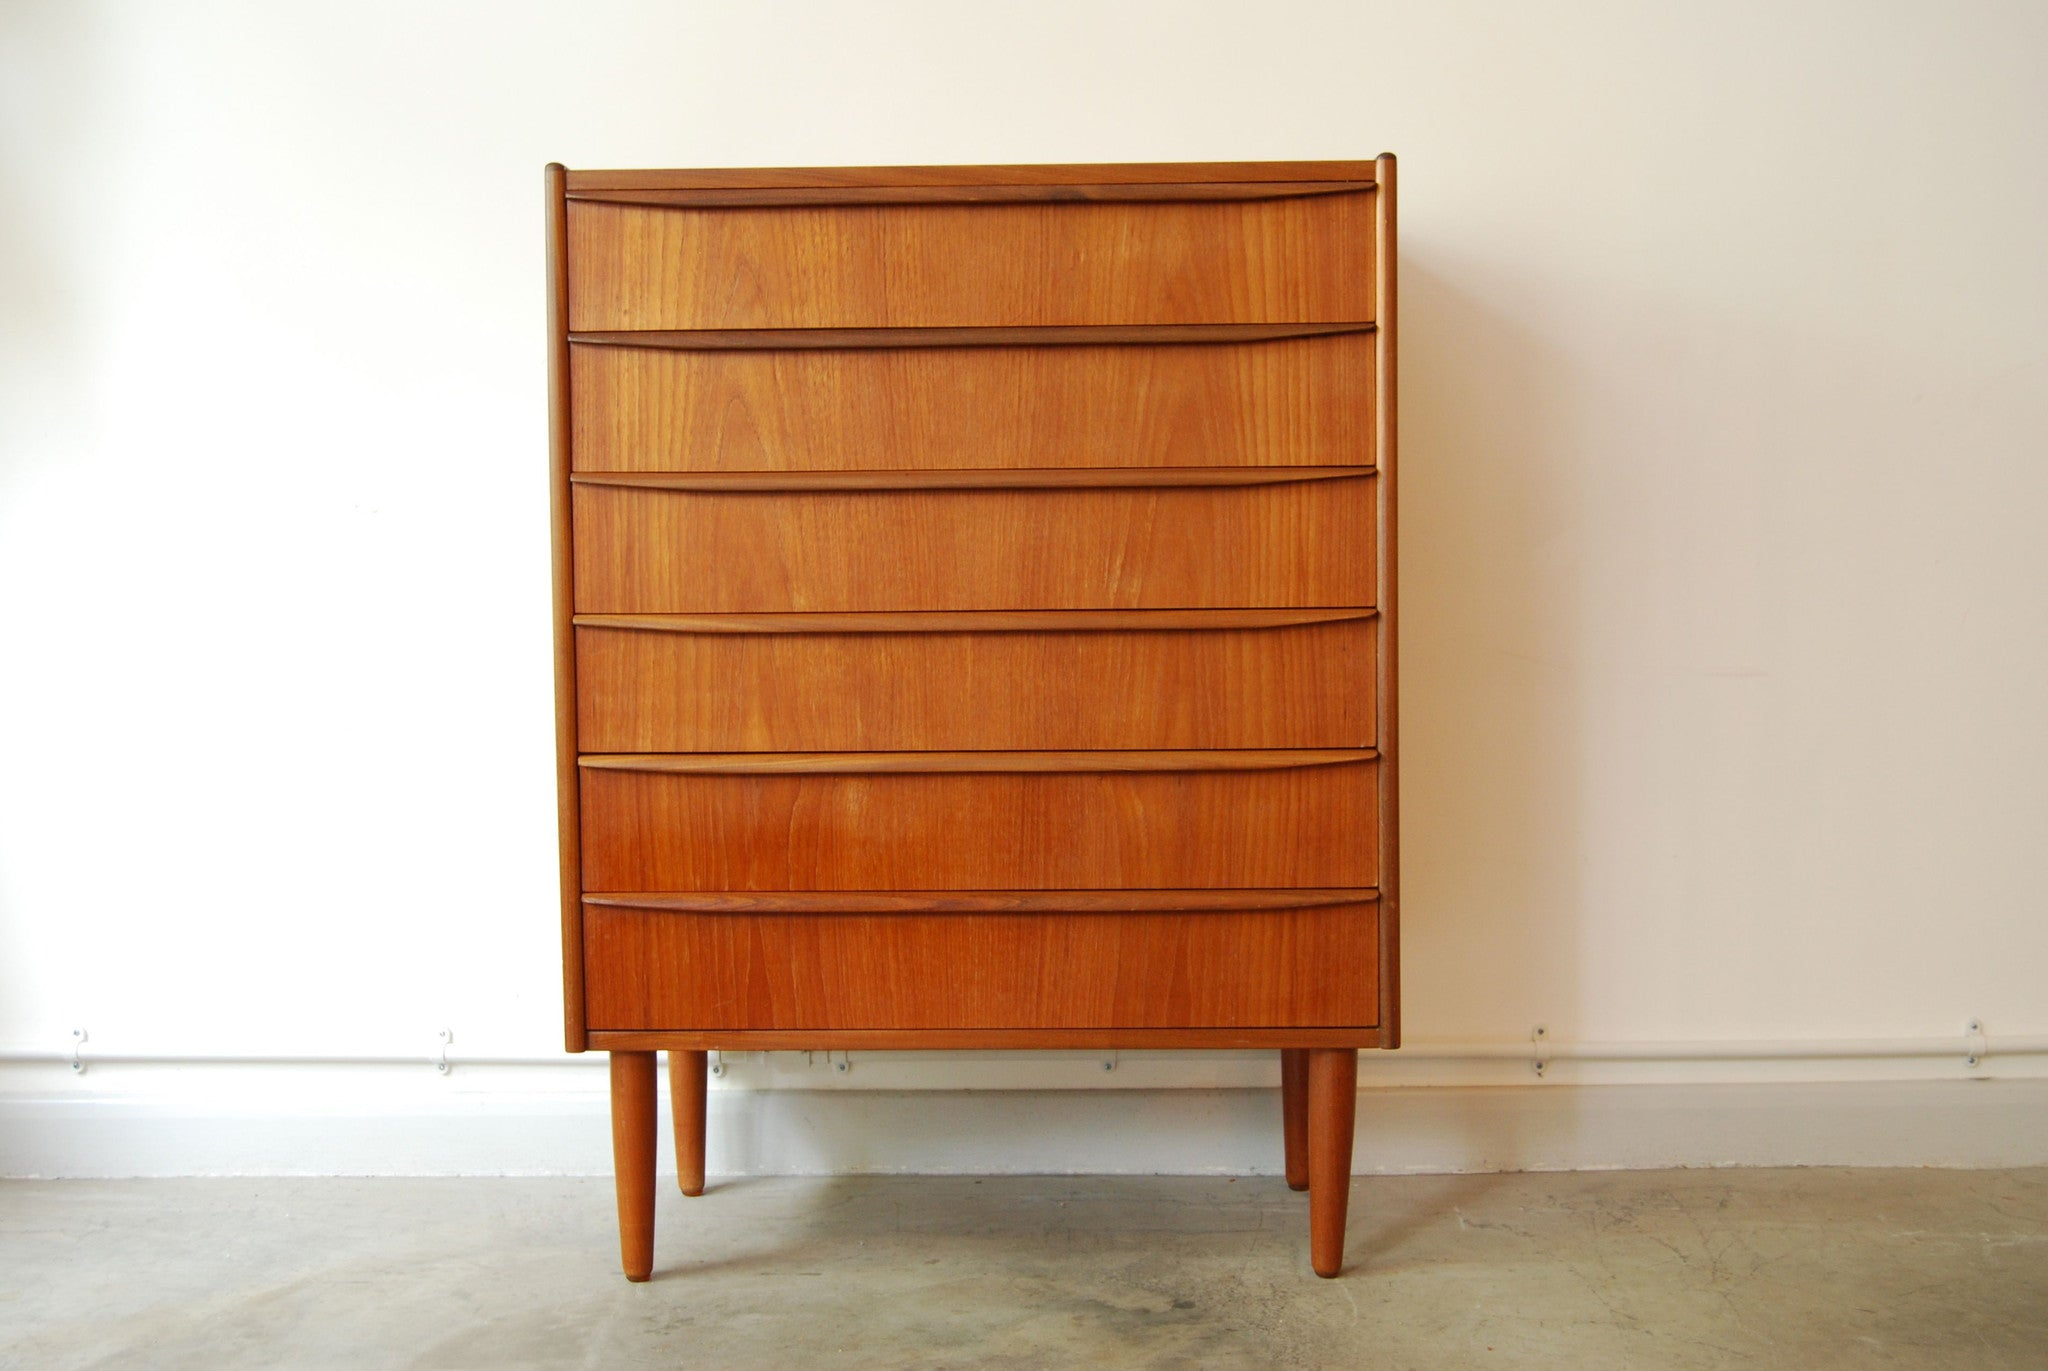 Teak chest of drawers with lipped handles